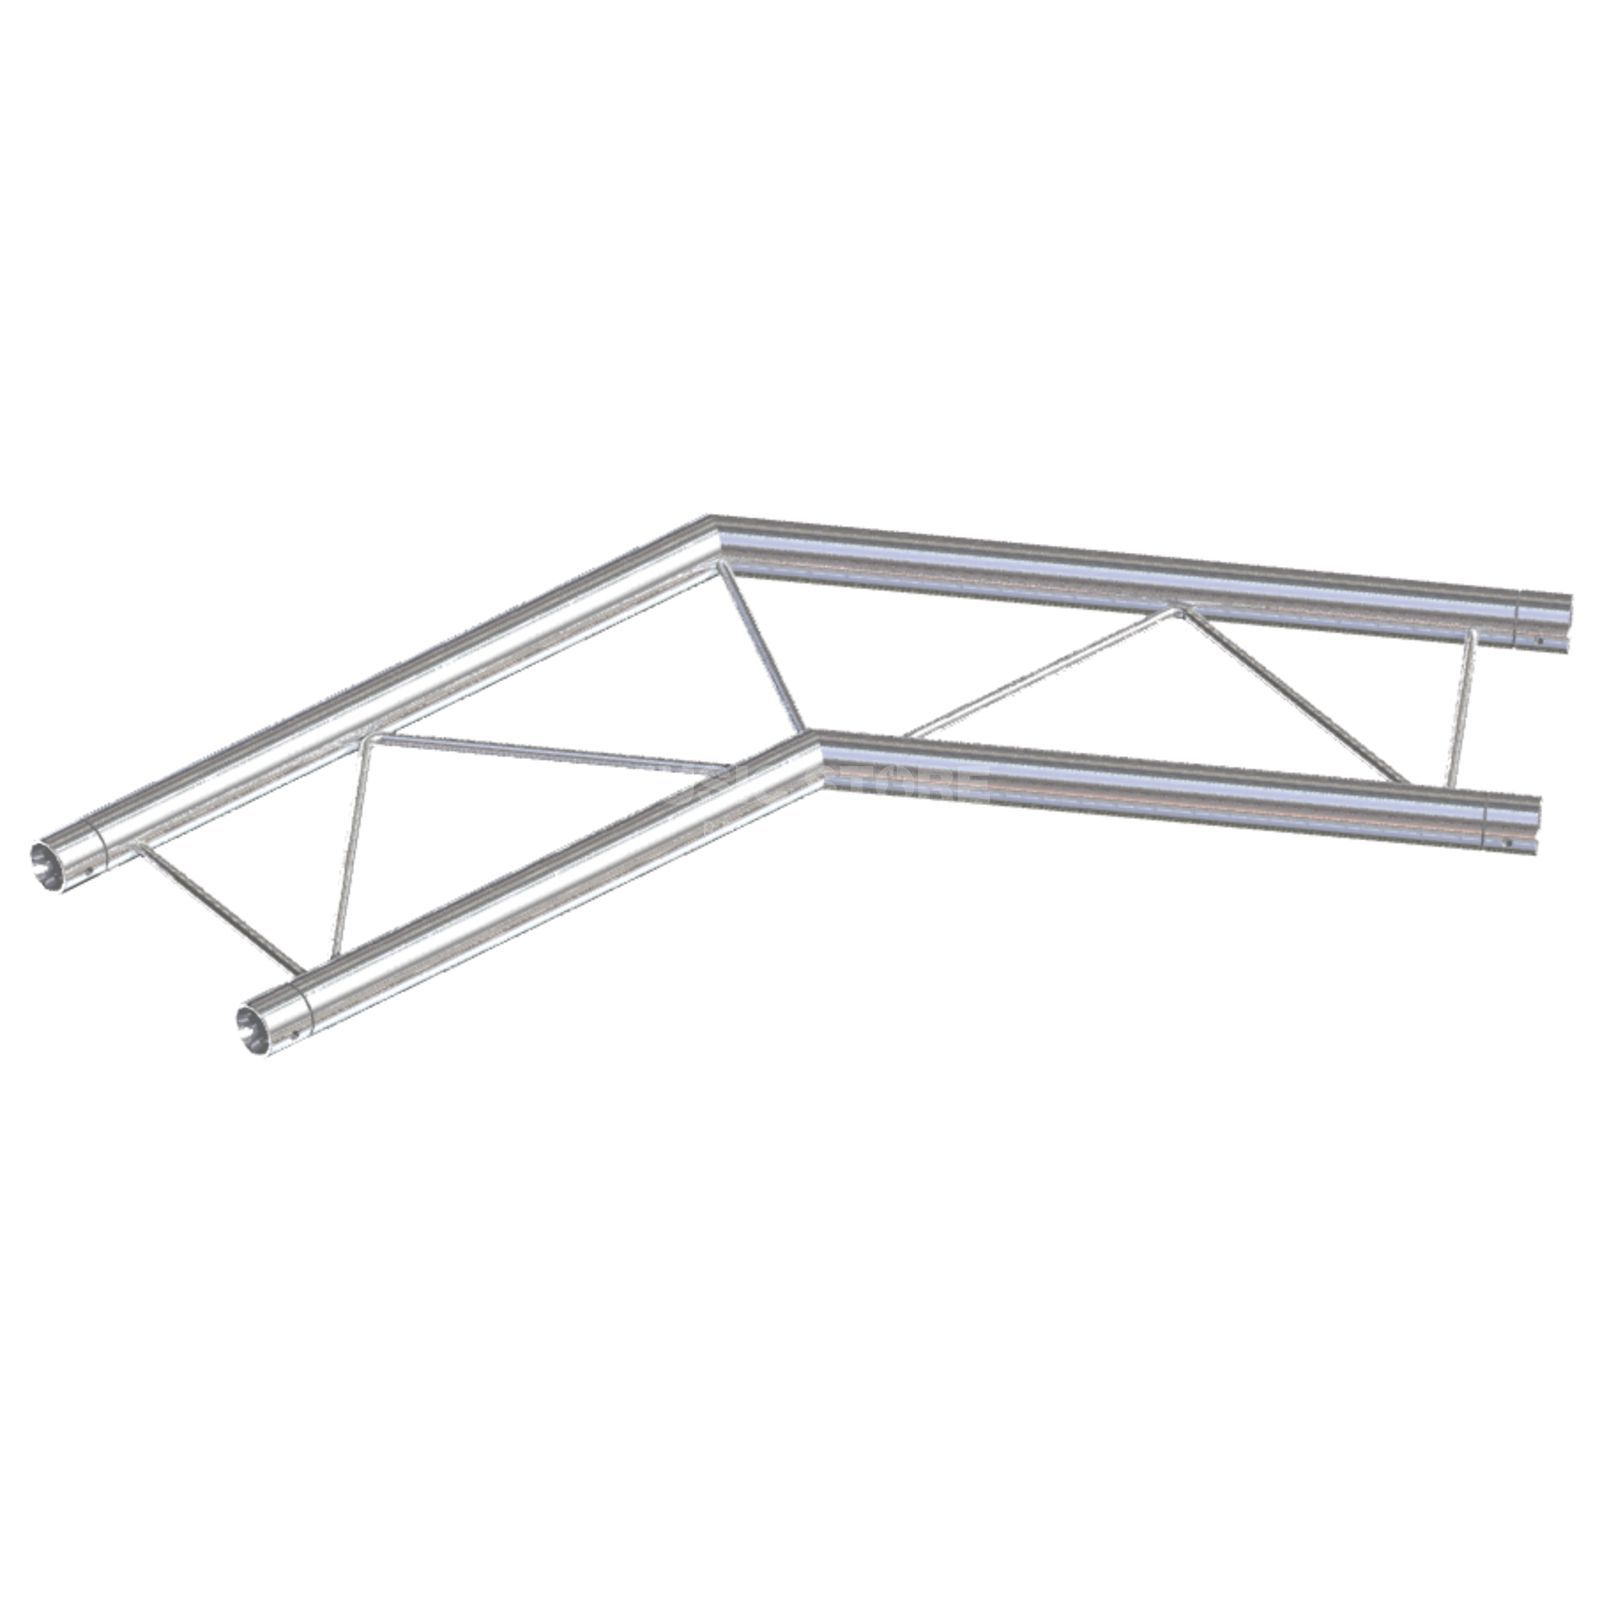 Global Truss F22 2-Way Corner C23 H 135°  Produktbillede